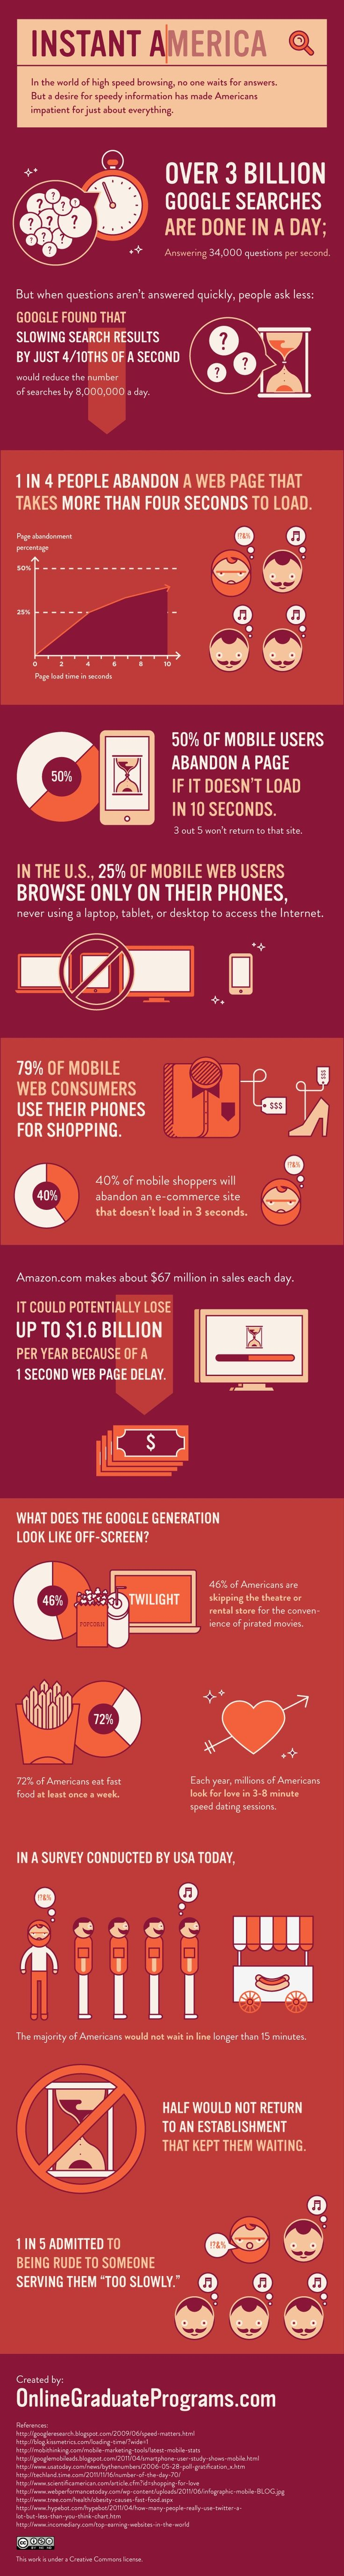 Instant Gratification in America [INFOGRAPHIC]